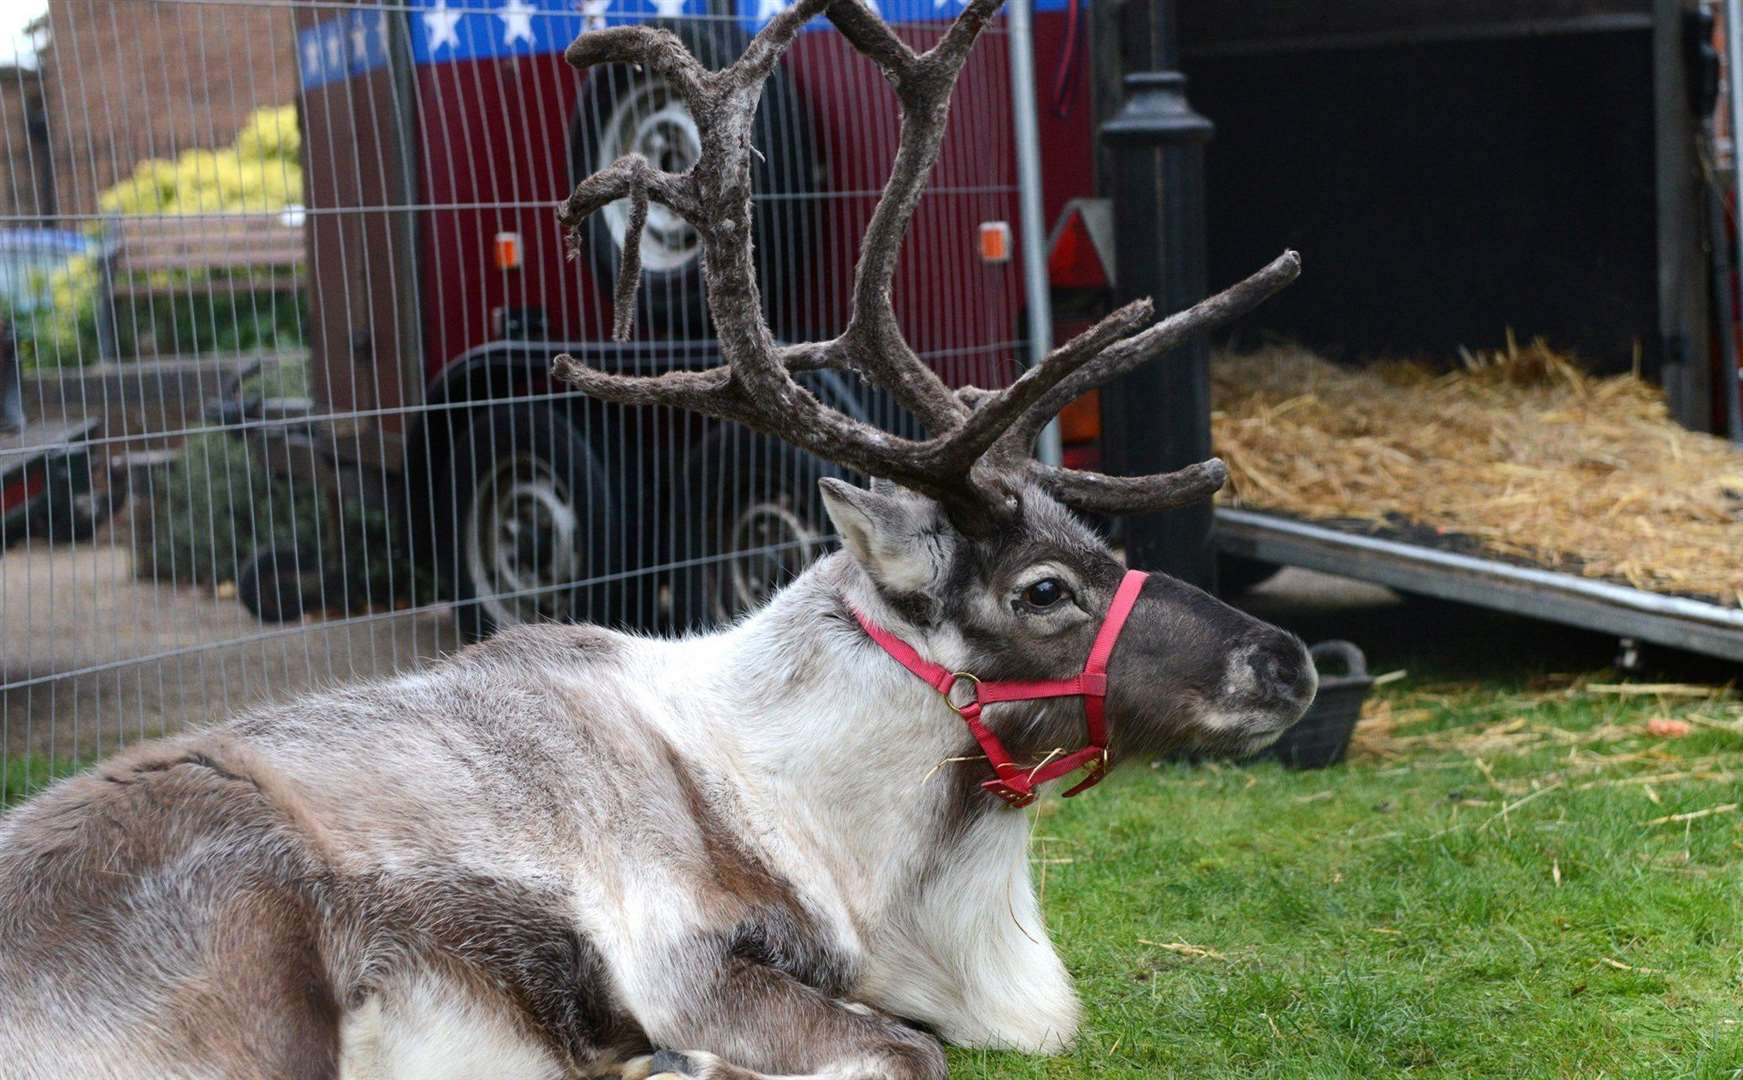 Tour around the county with Santa's reindeer